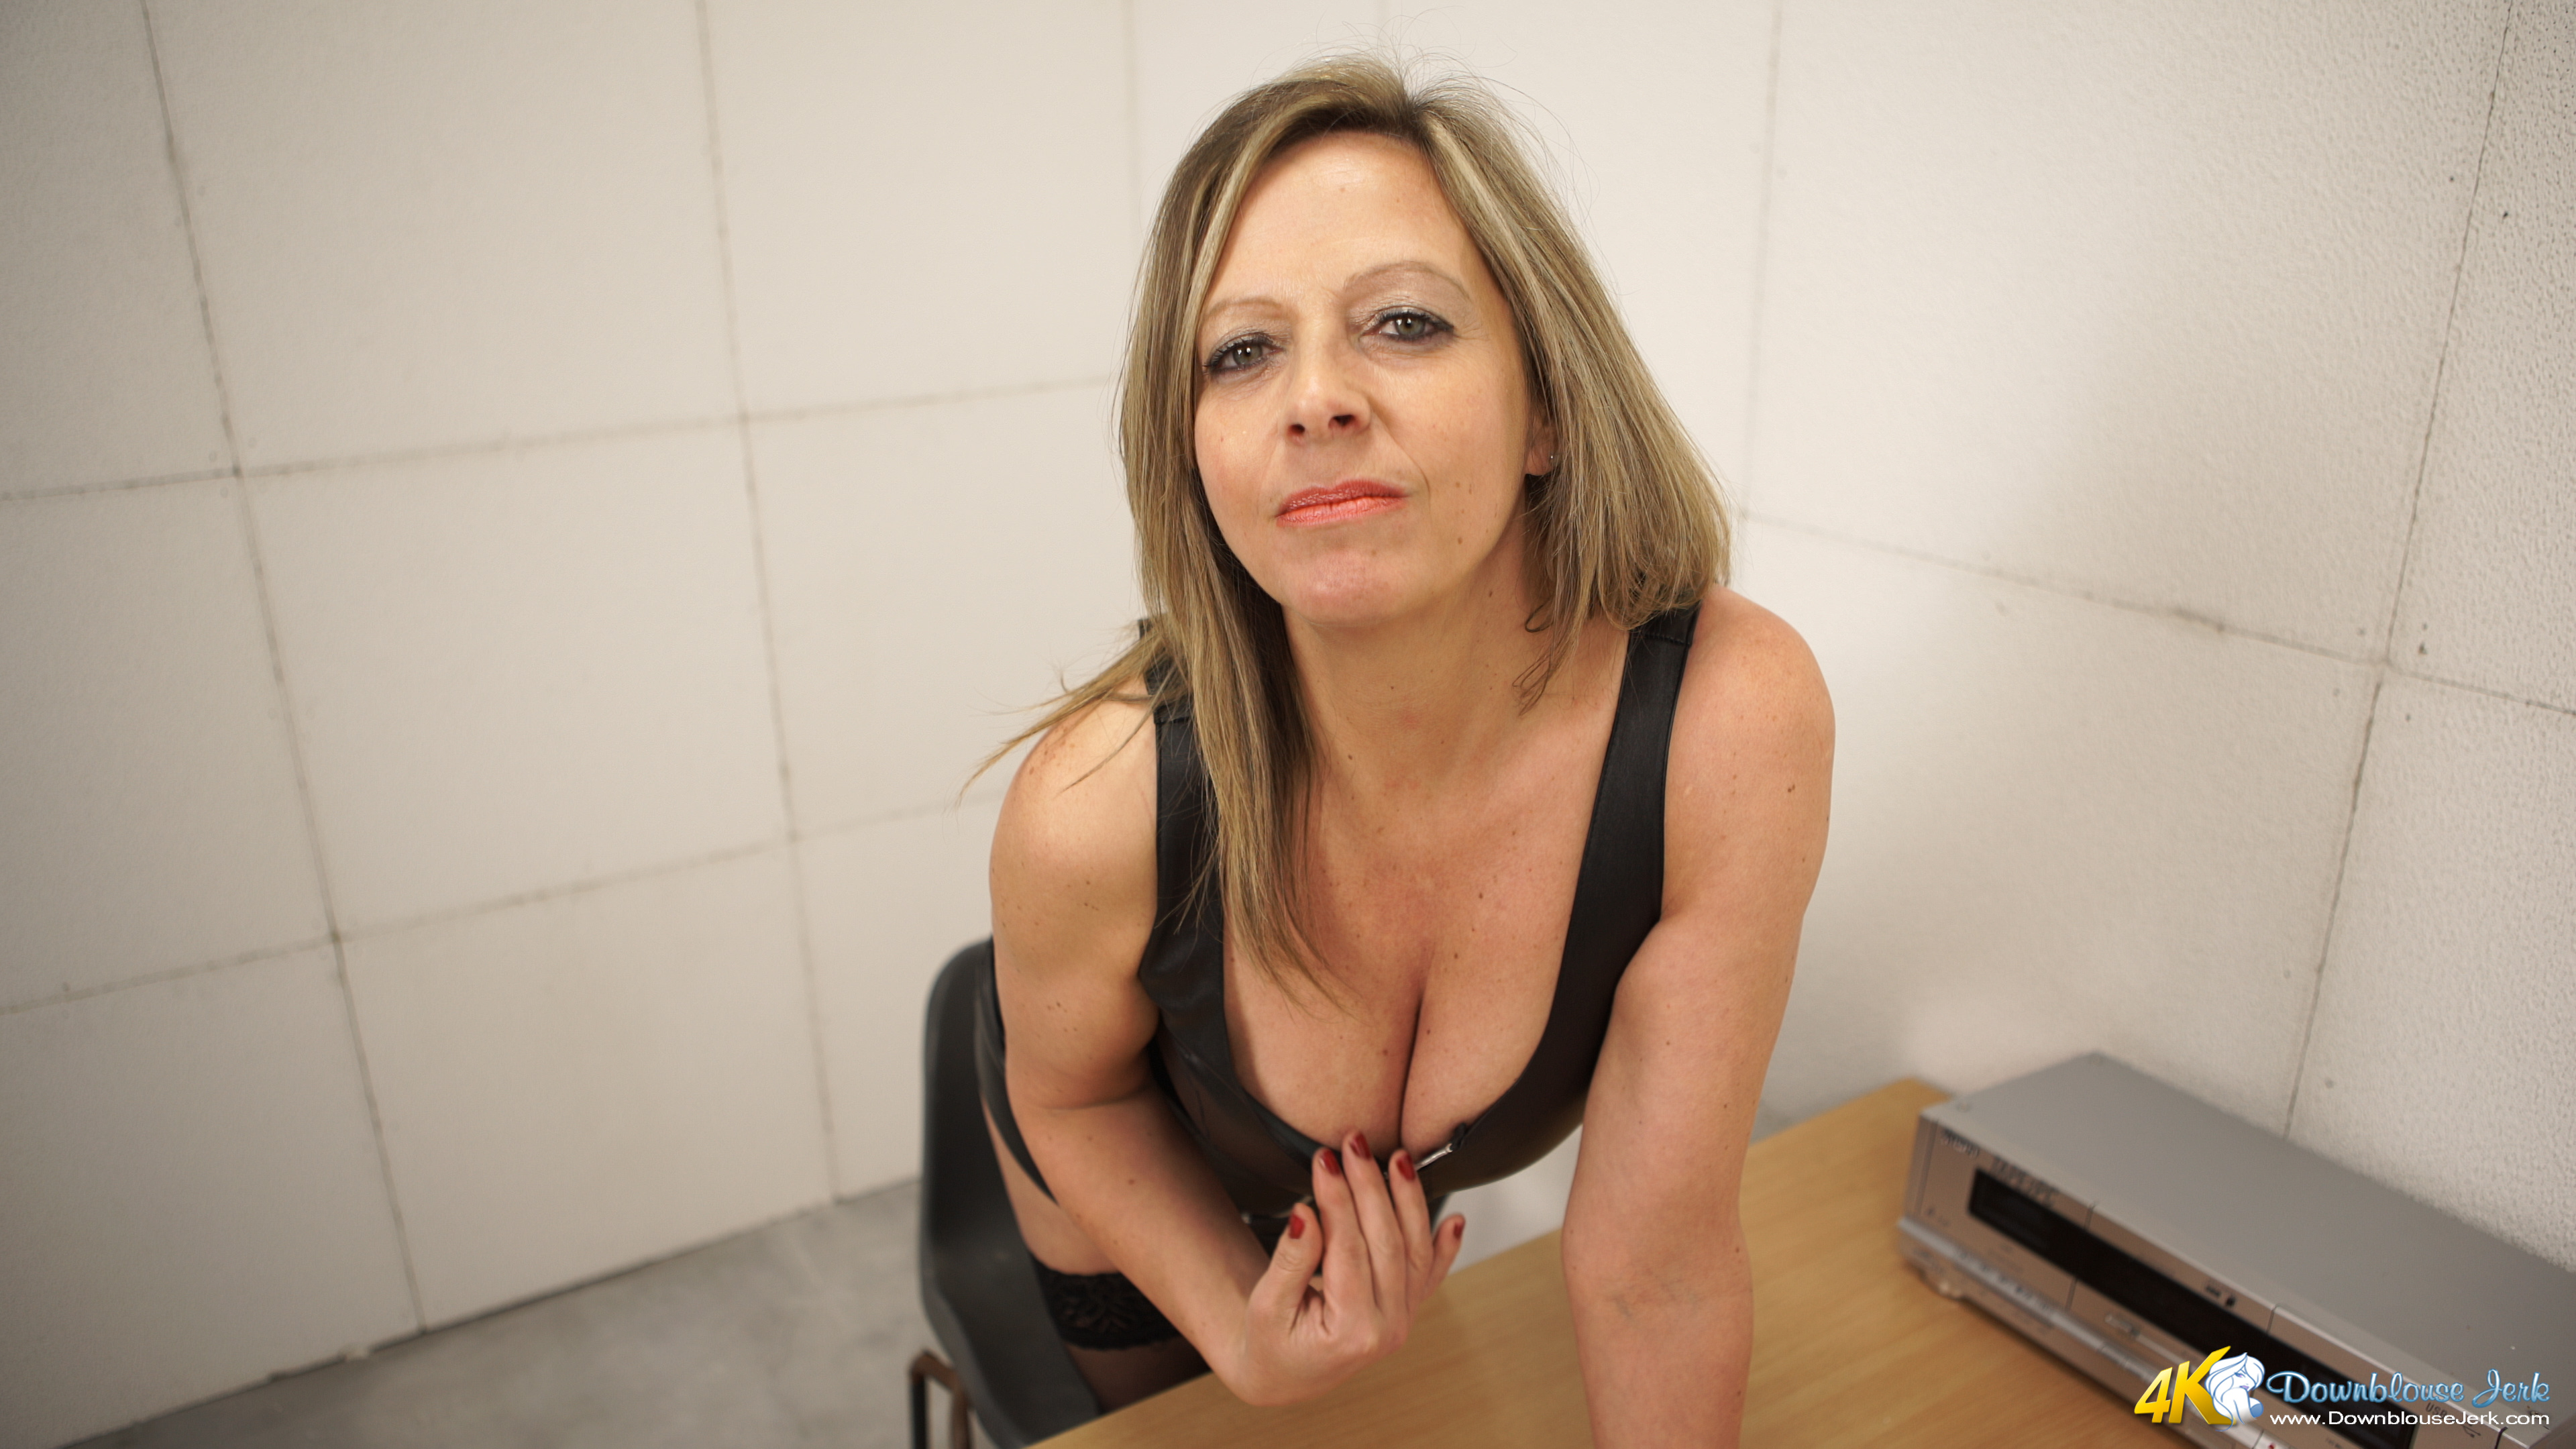 Downblouse milf boobs 4k